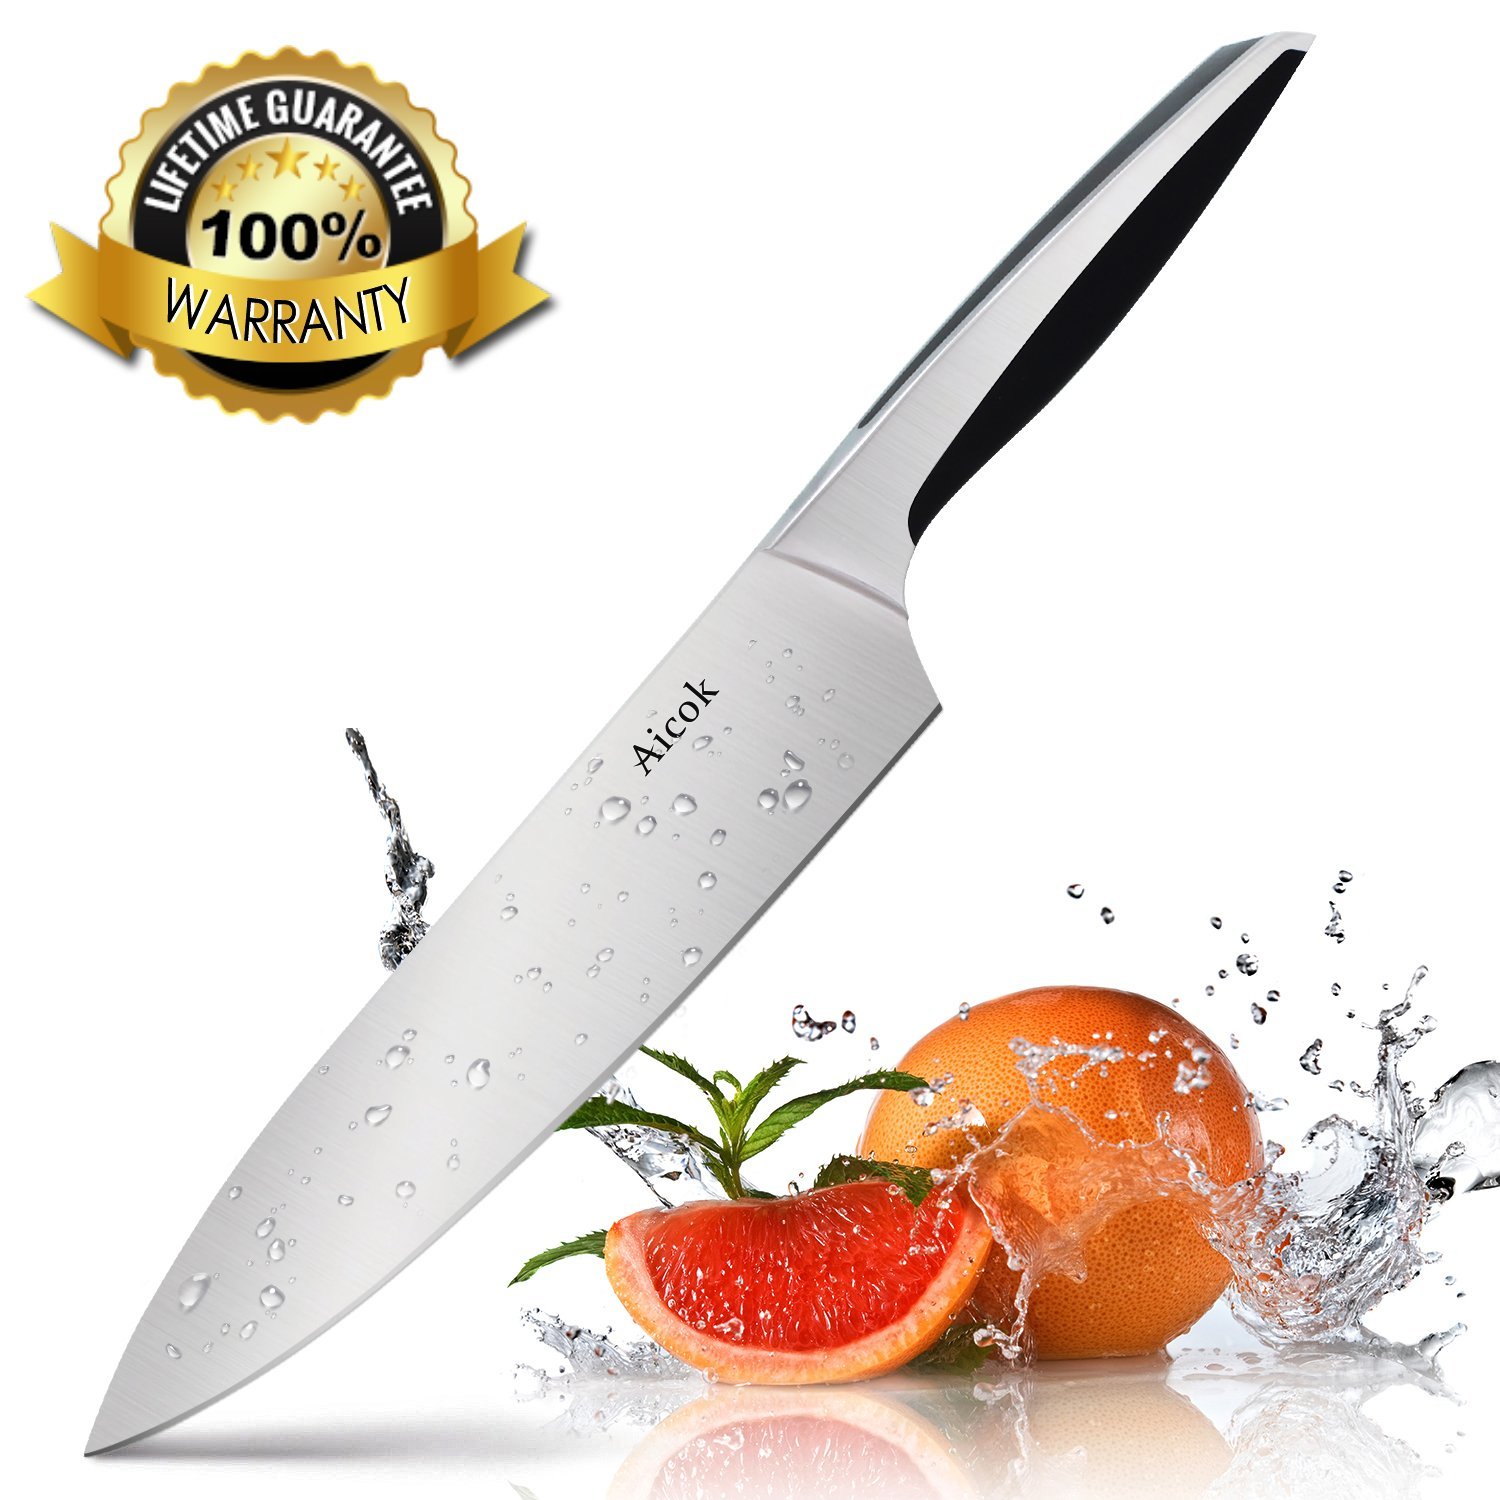 Aicok Chef Knife Pro Kitchen Knife 8-inch High Carbon German Stainless Steel Razor Sharp Blade and Ergonomic Handle by AICOK (Image #1)